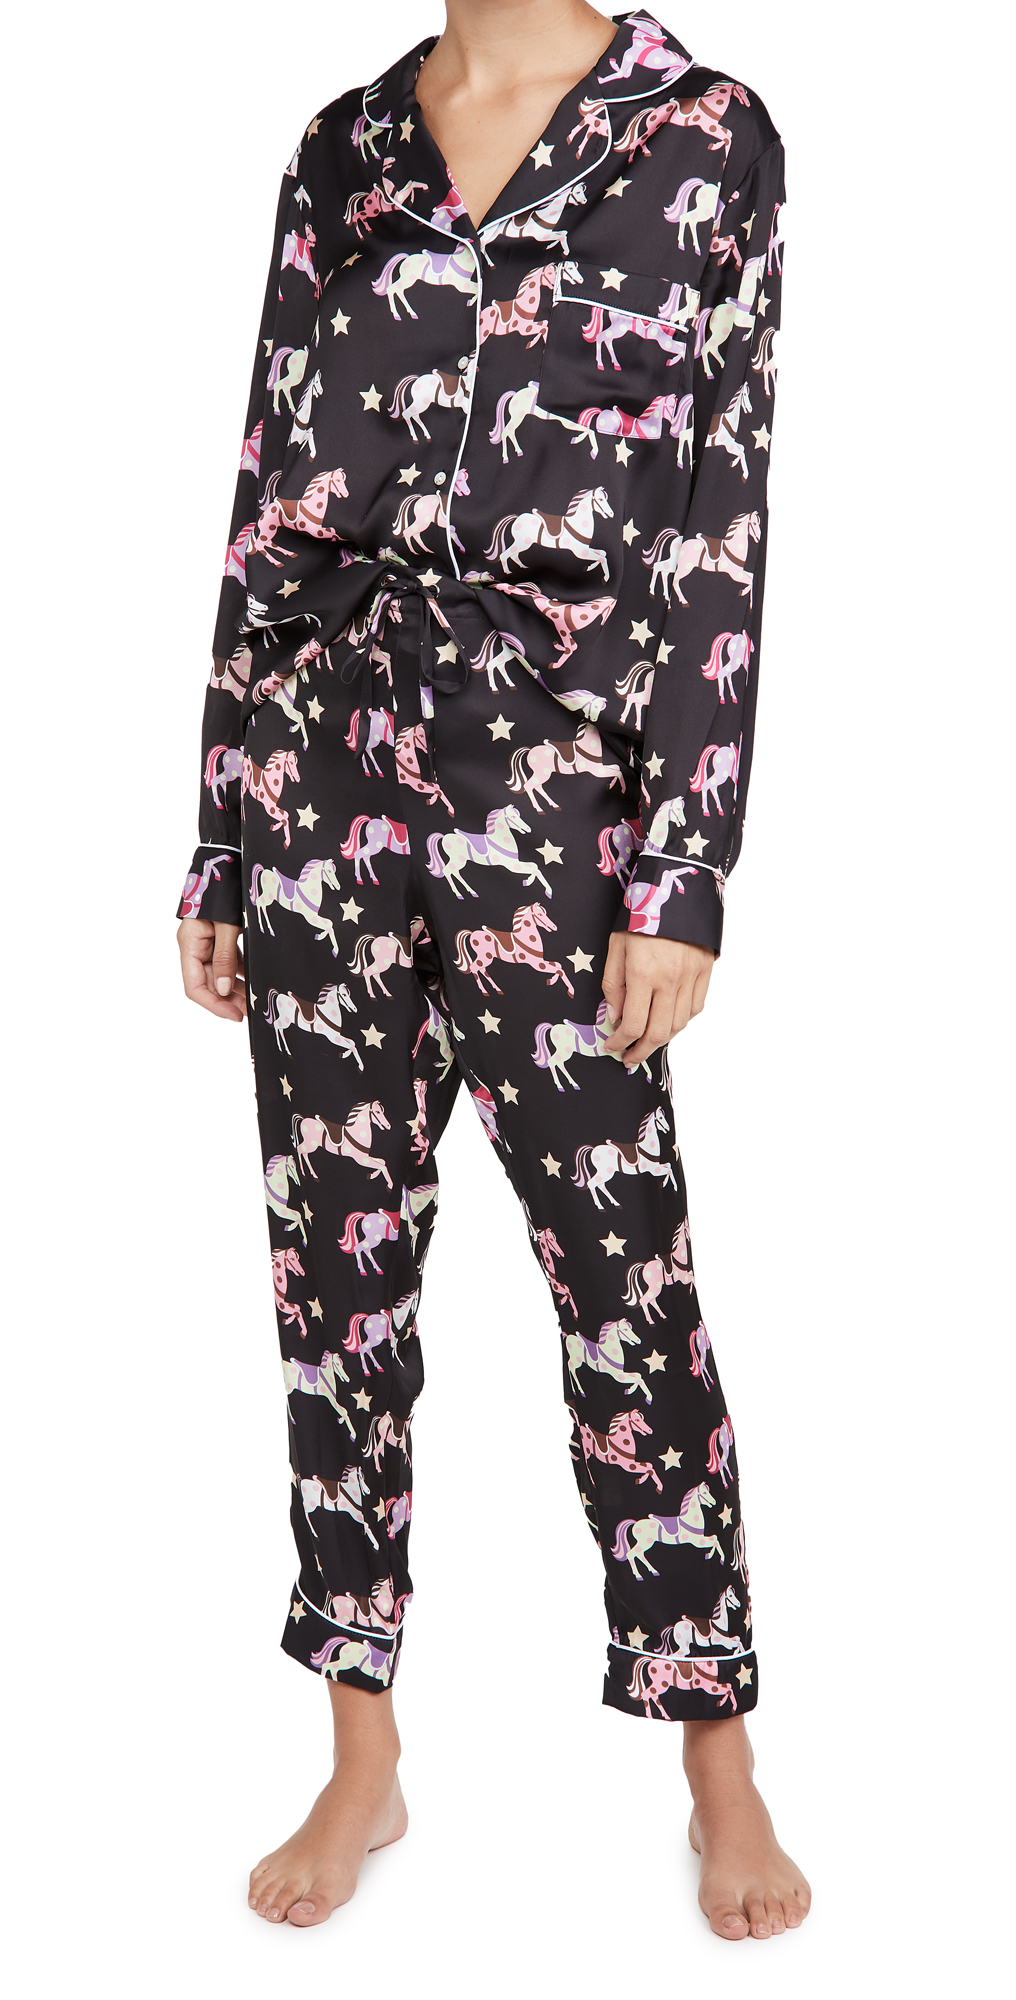 Karen Mabon Carousel Black Long Pajama Set